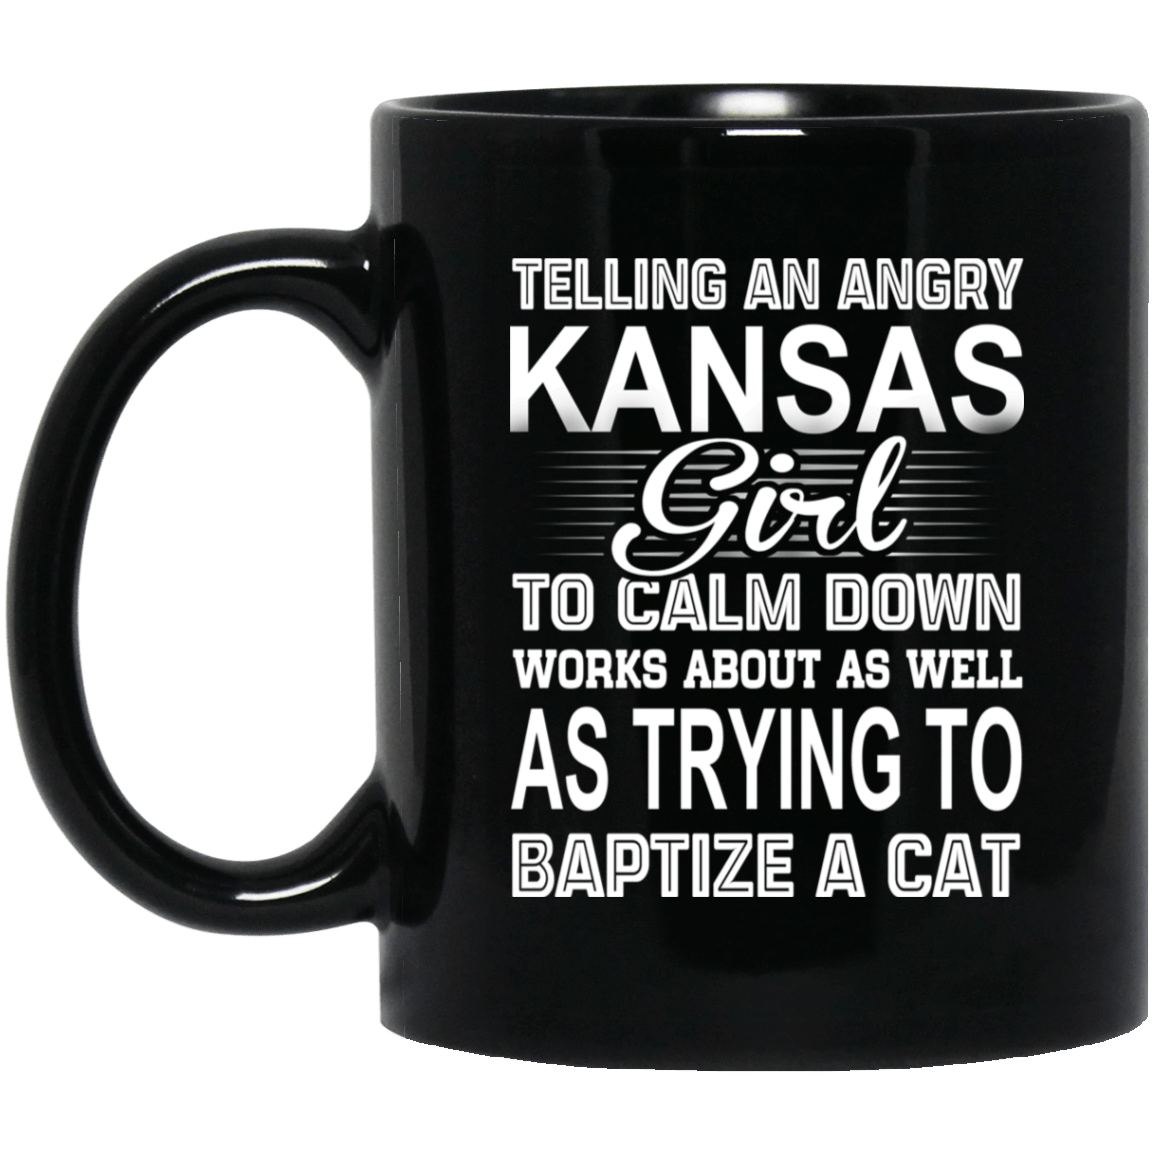 Telling An Angry Kansas Girl To Calm Down Works About As Well As Trying To Baptize A Cat Mug 1065-10181-76151643-49307 - Tee Ript